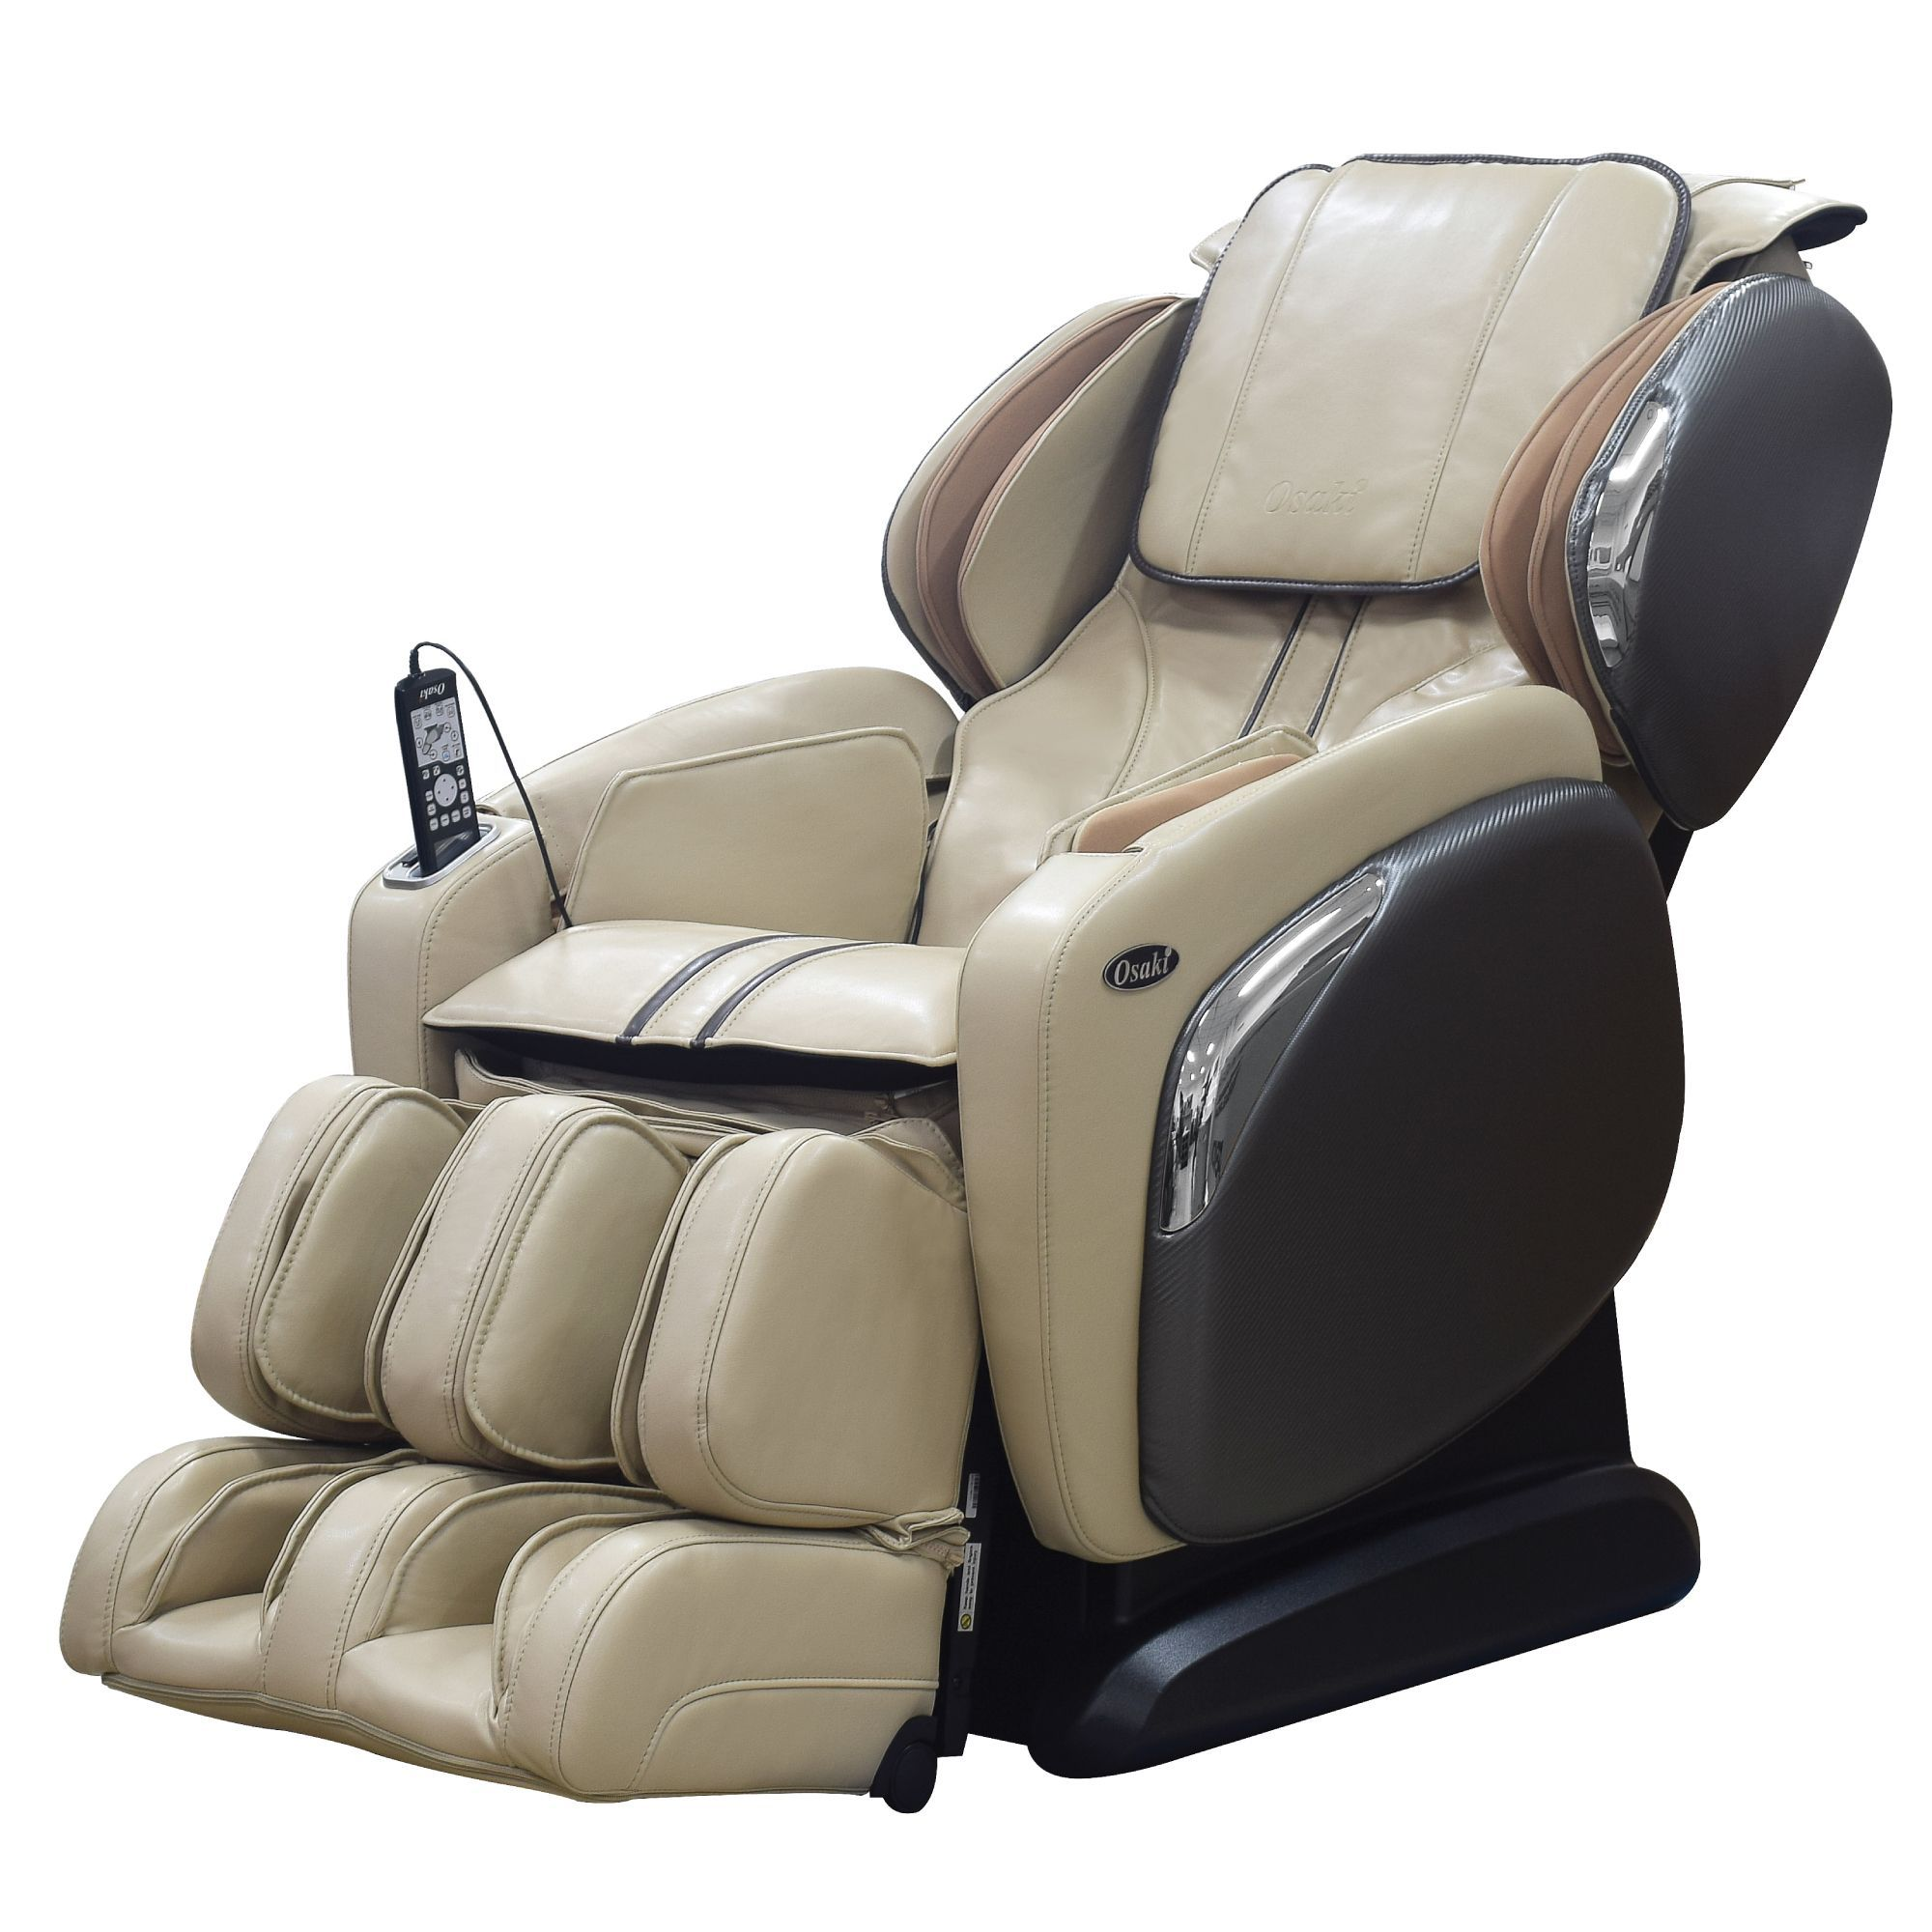 Best Massage Chair Reviews 2016 3 TopRated Recliners